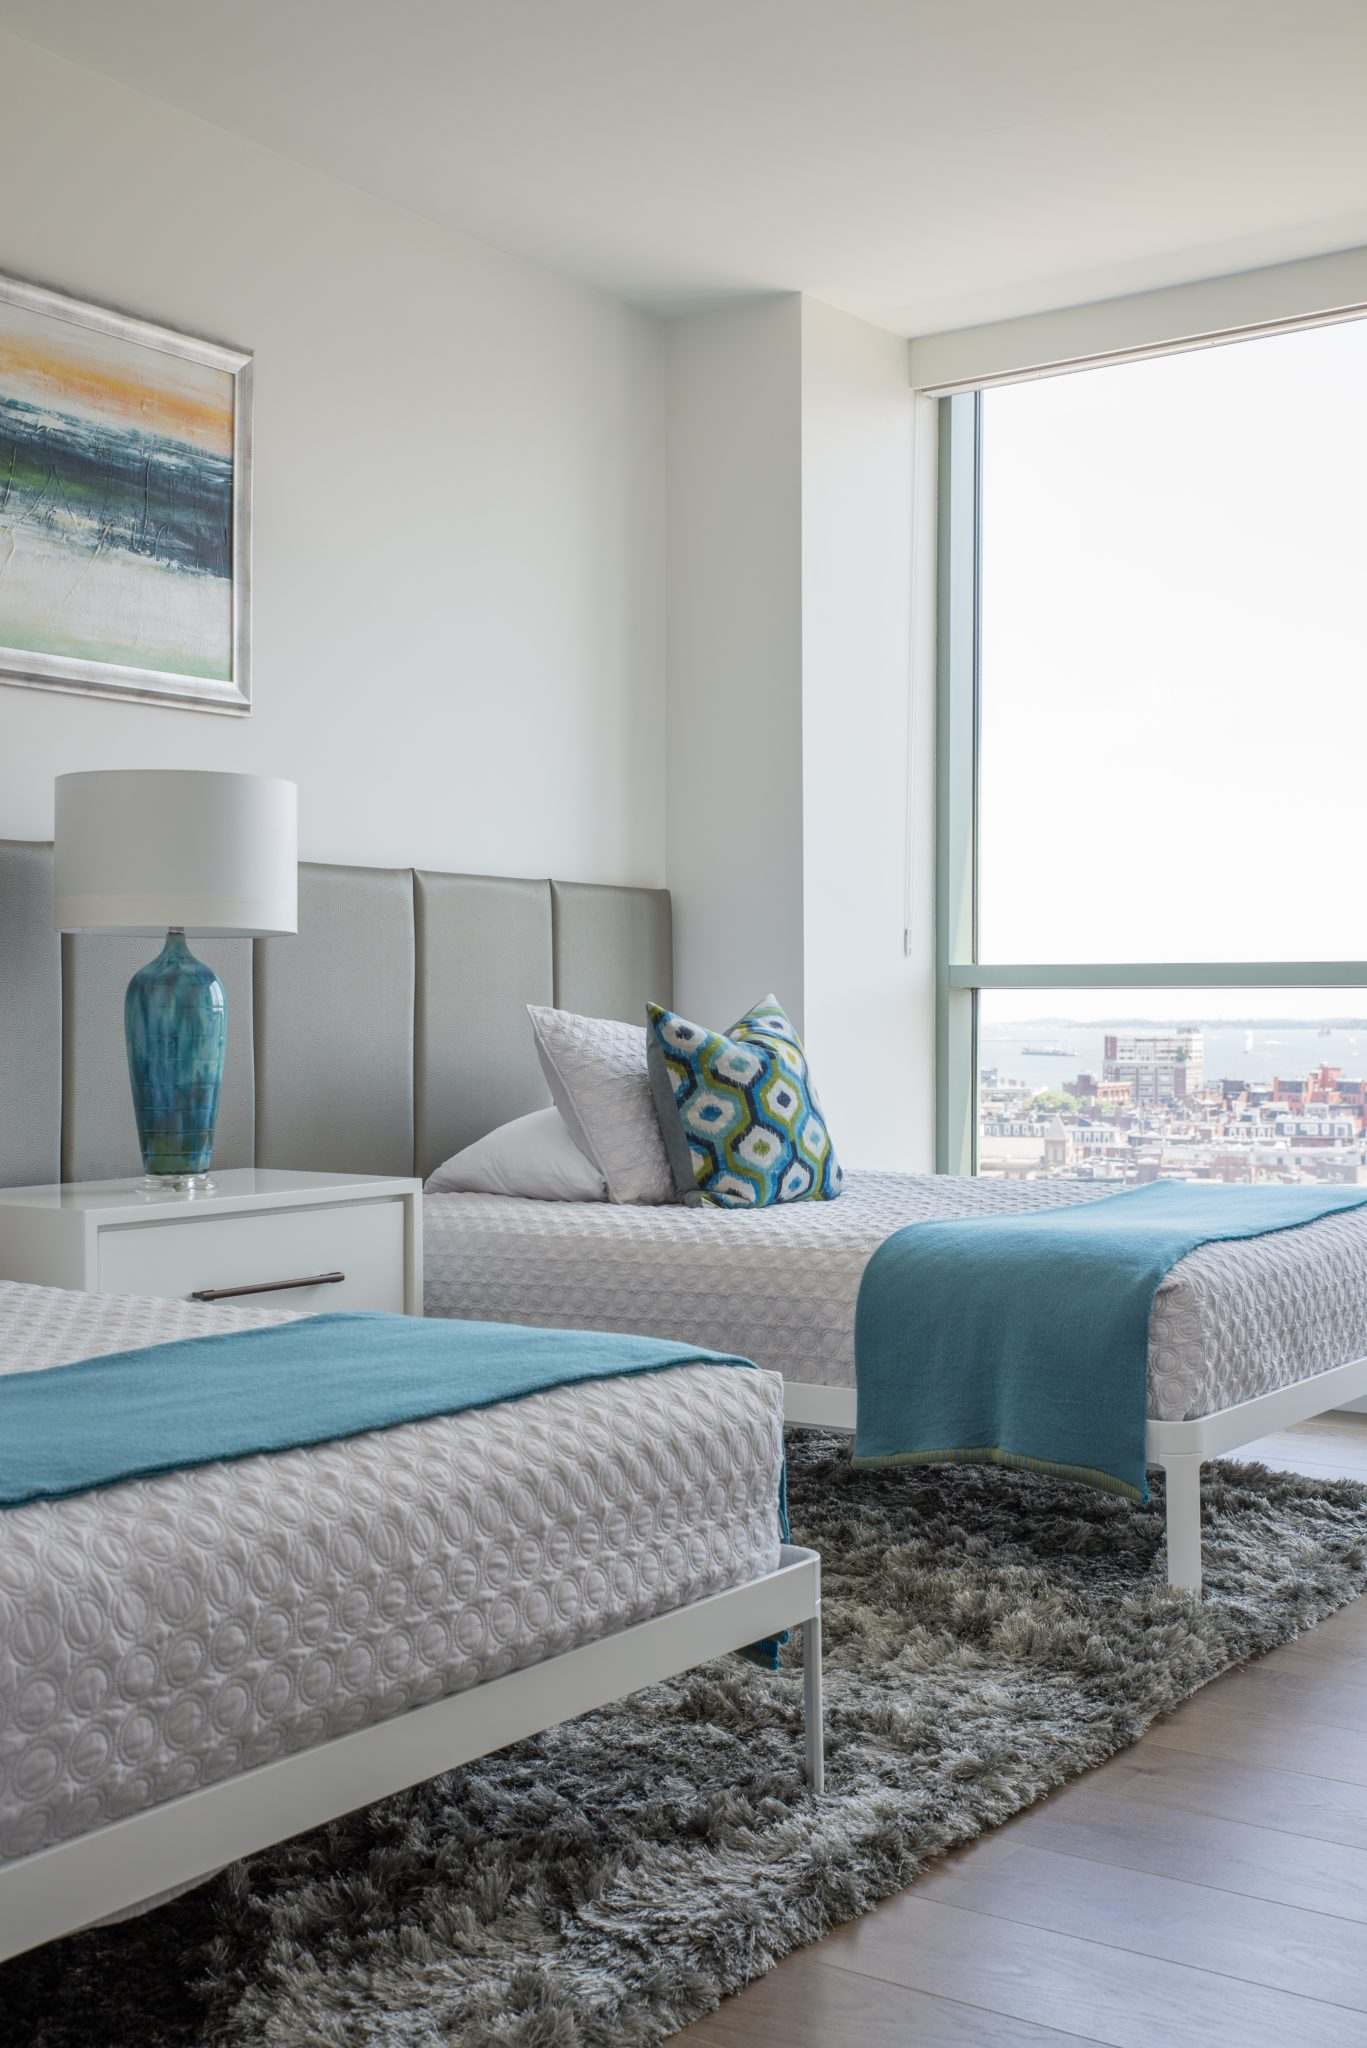 Guest bedroom with a view by JN Interior Spaces